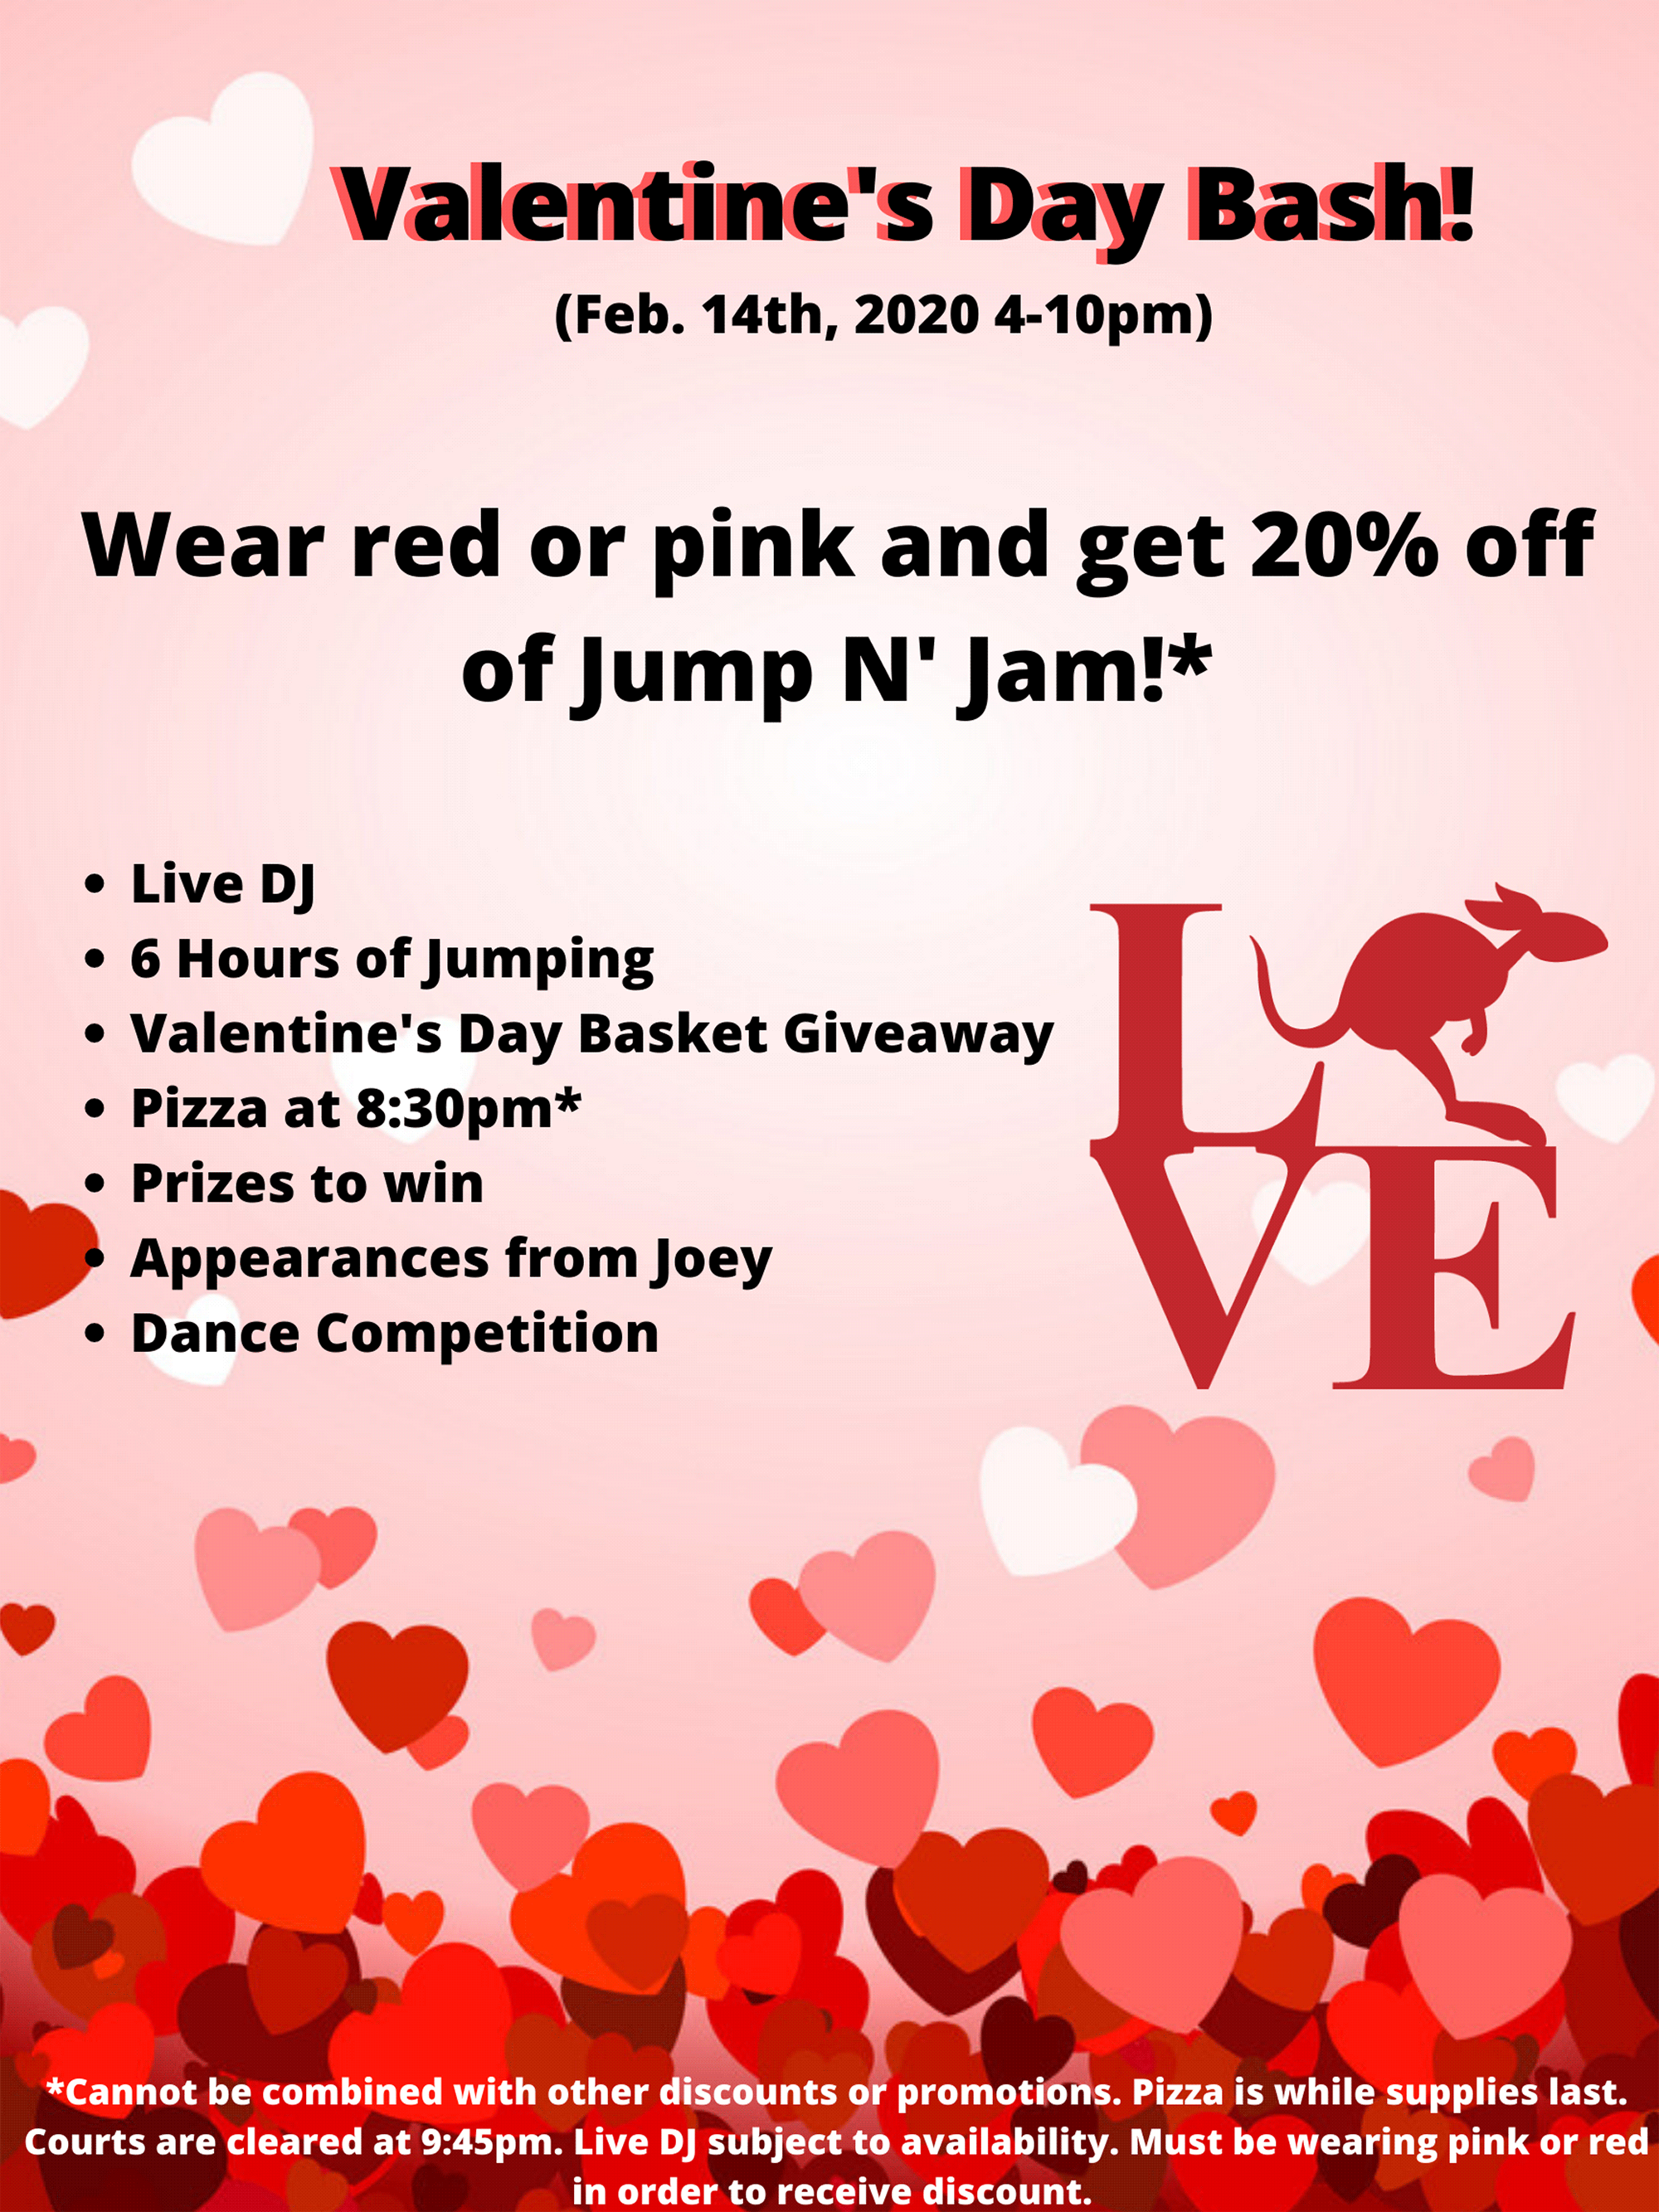 Valentine's Day Bash at Launch Trampoline Park